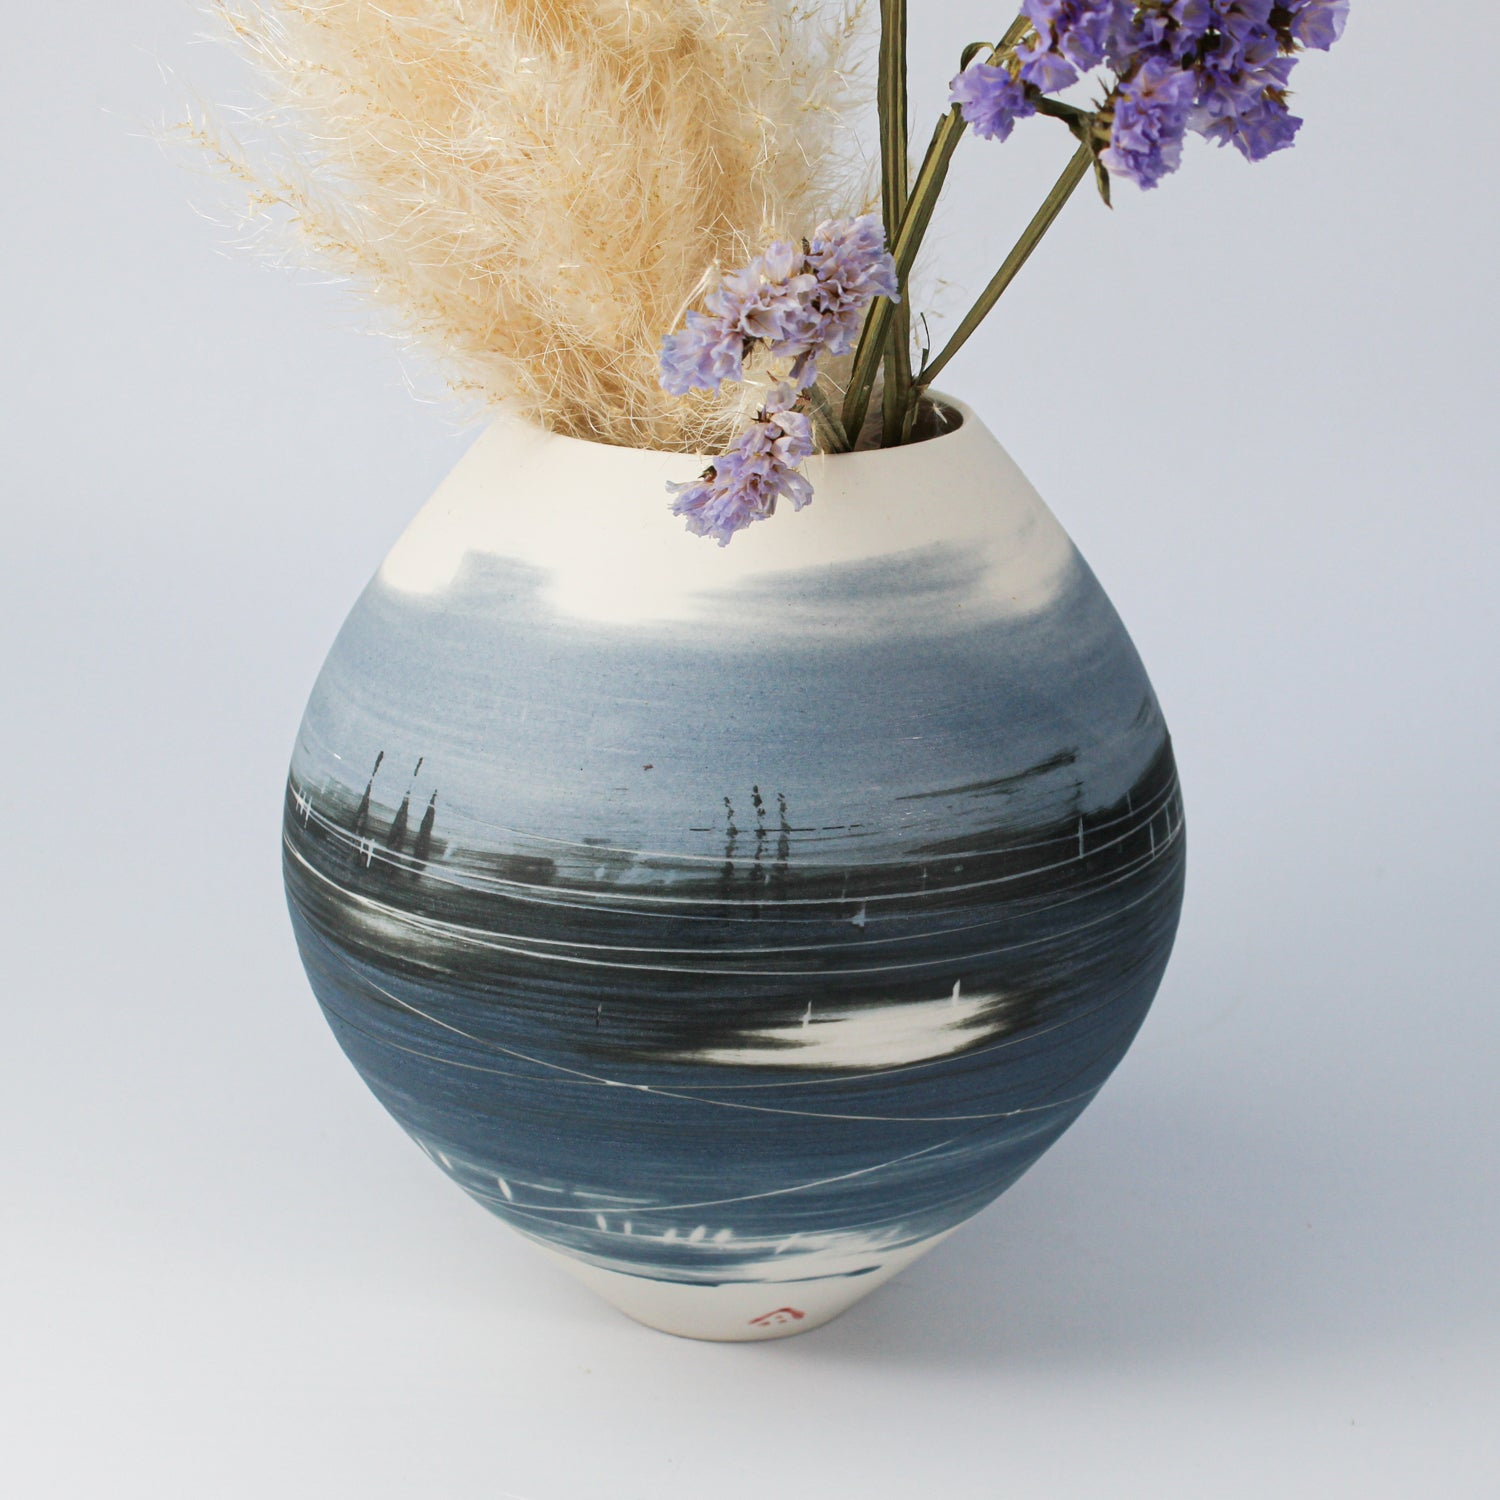 Blue and white porcelain spherical vase with fresh and dried flowers in